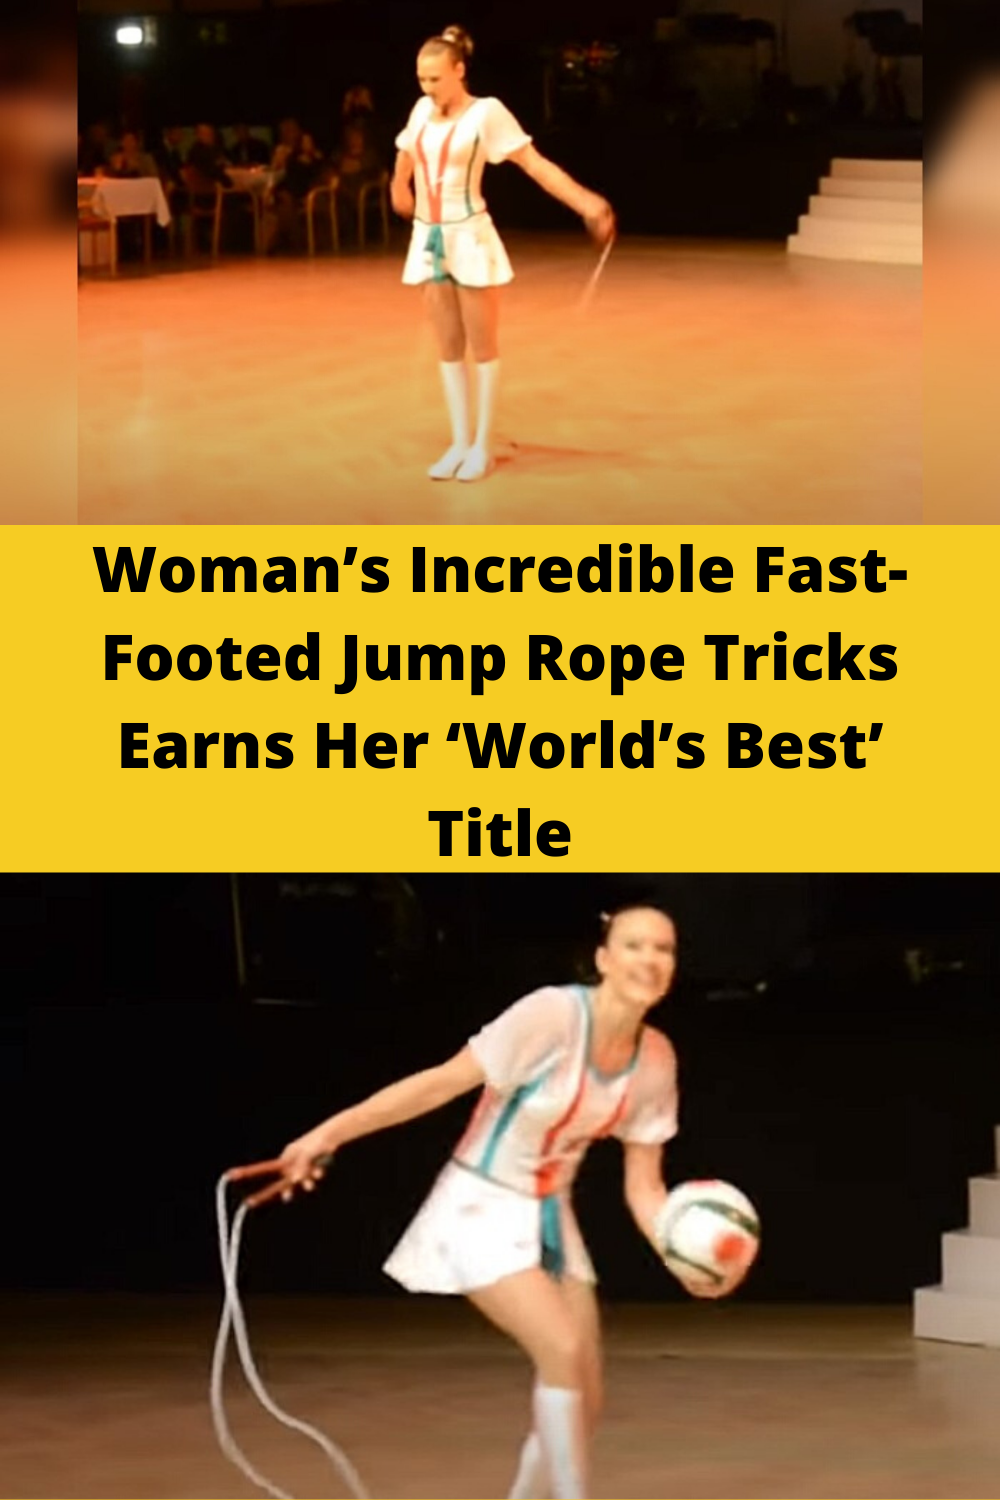 Woman's incredible fastfooted jump rope tricks earns her